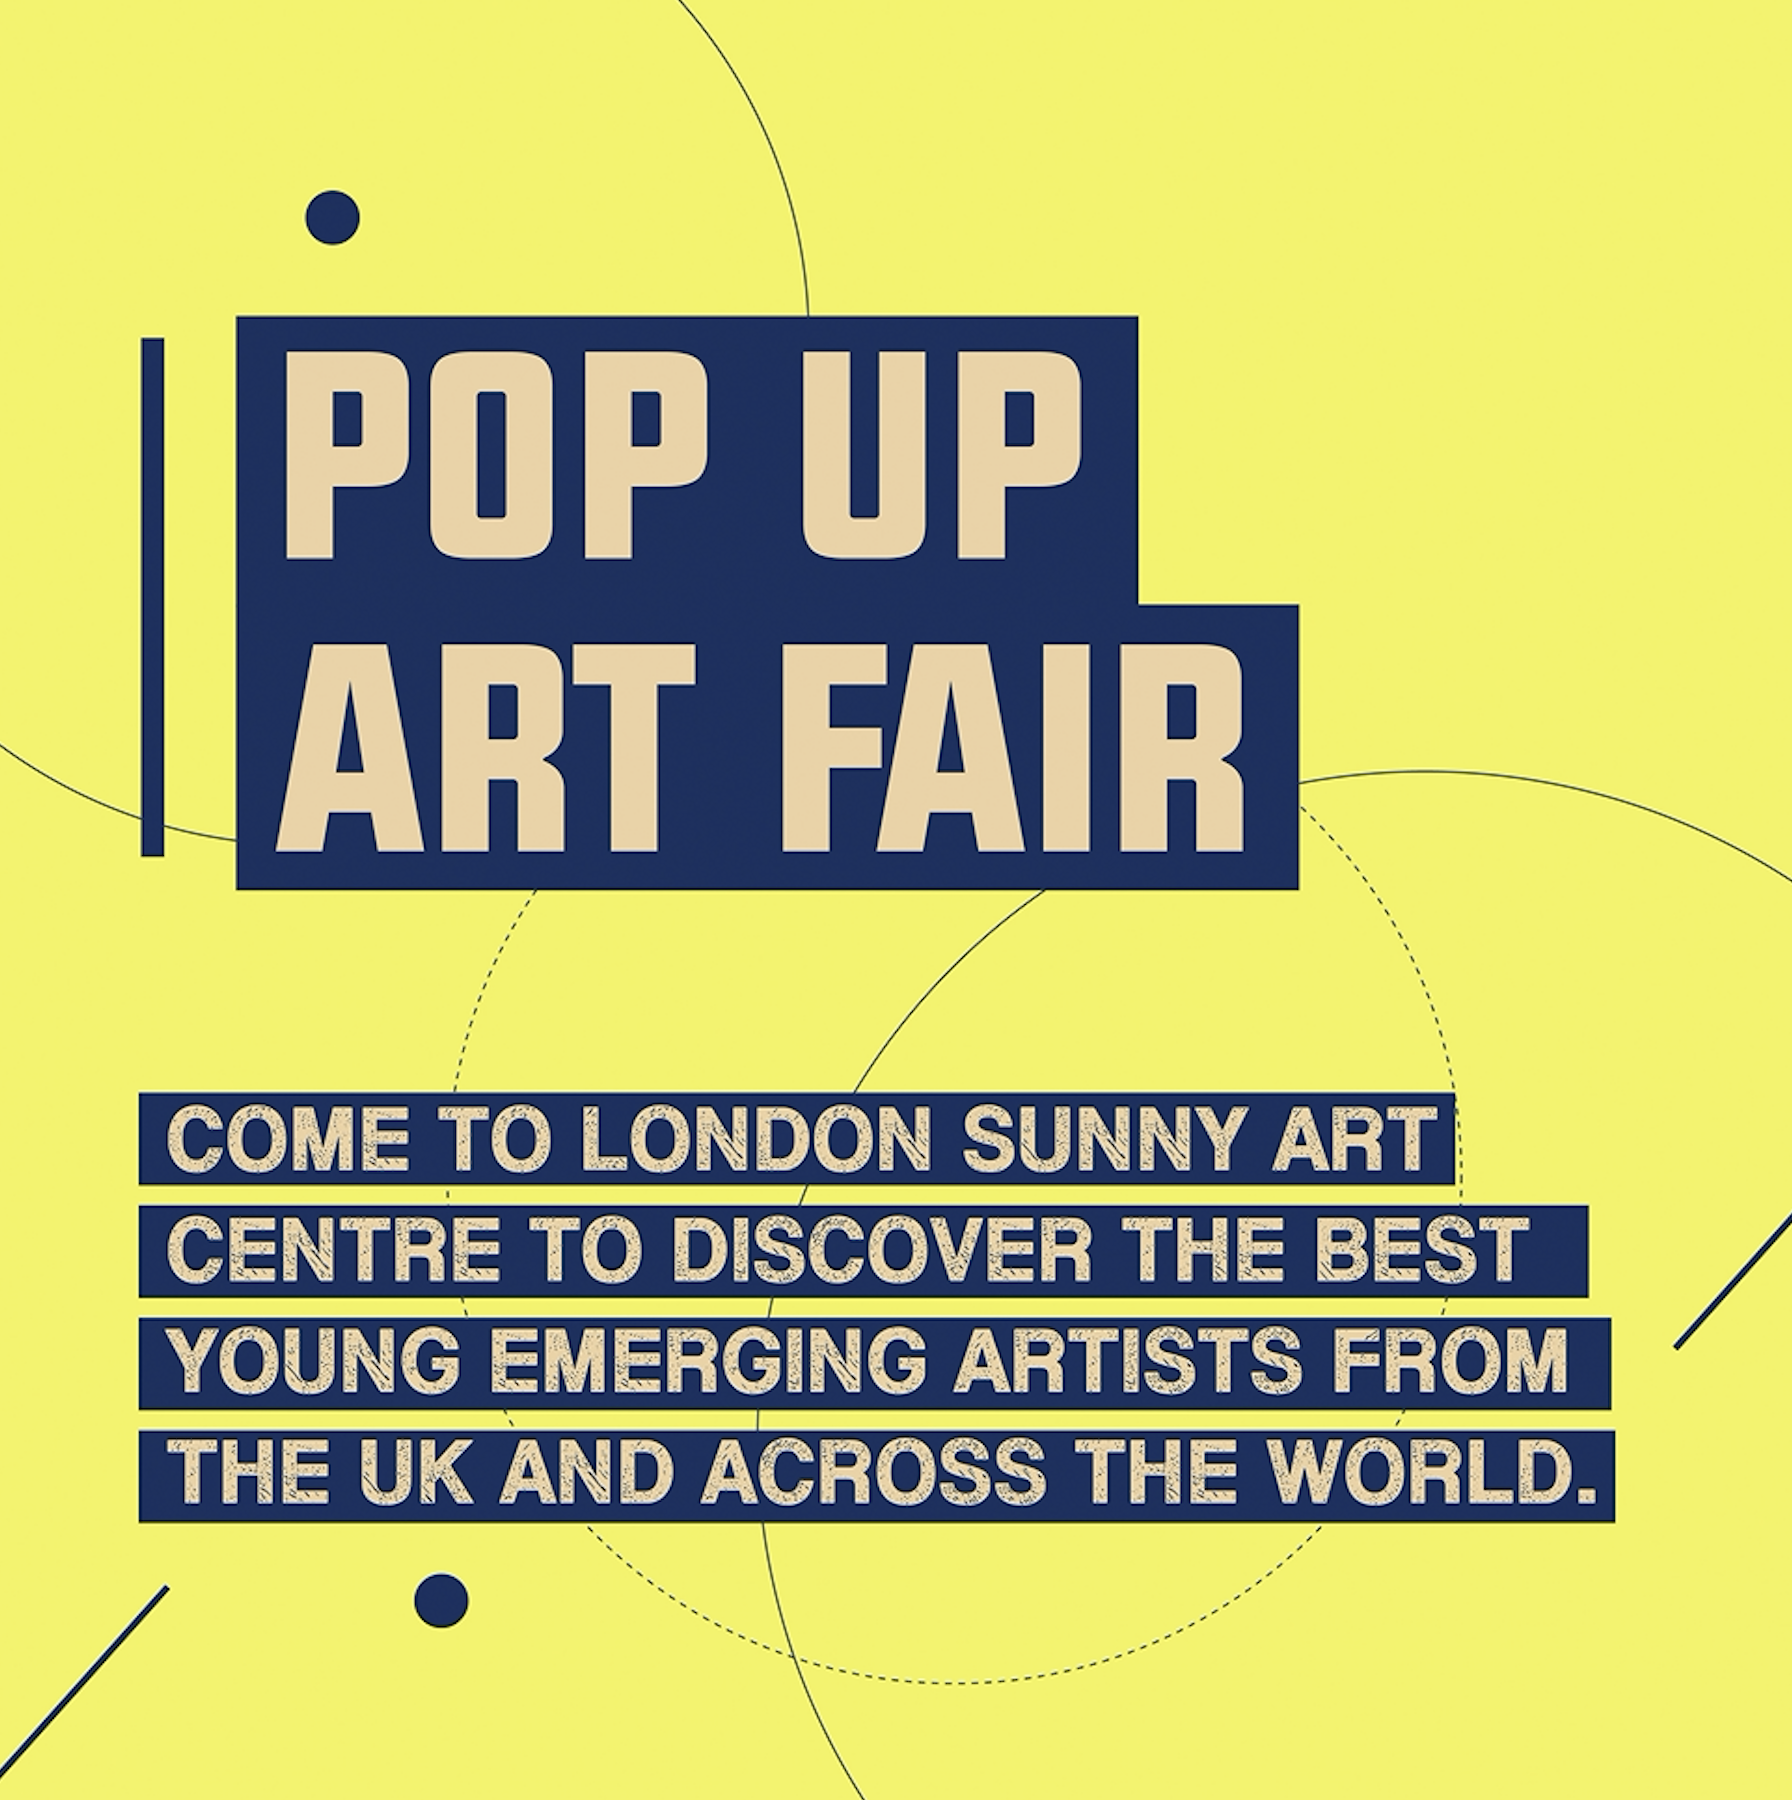 The London Pop Up Art Fair